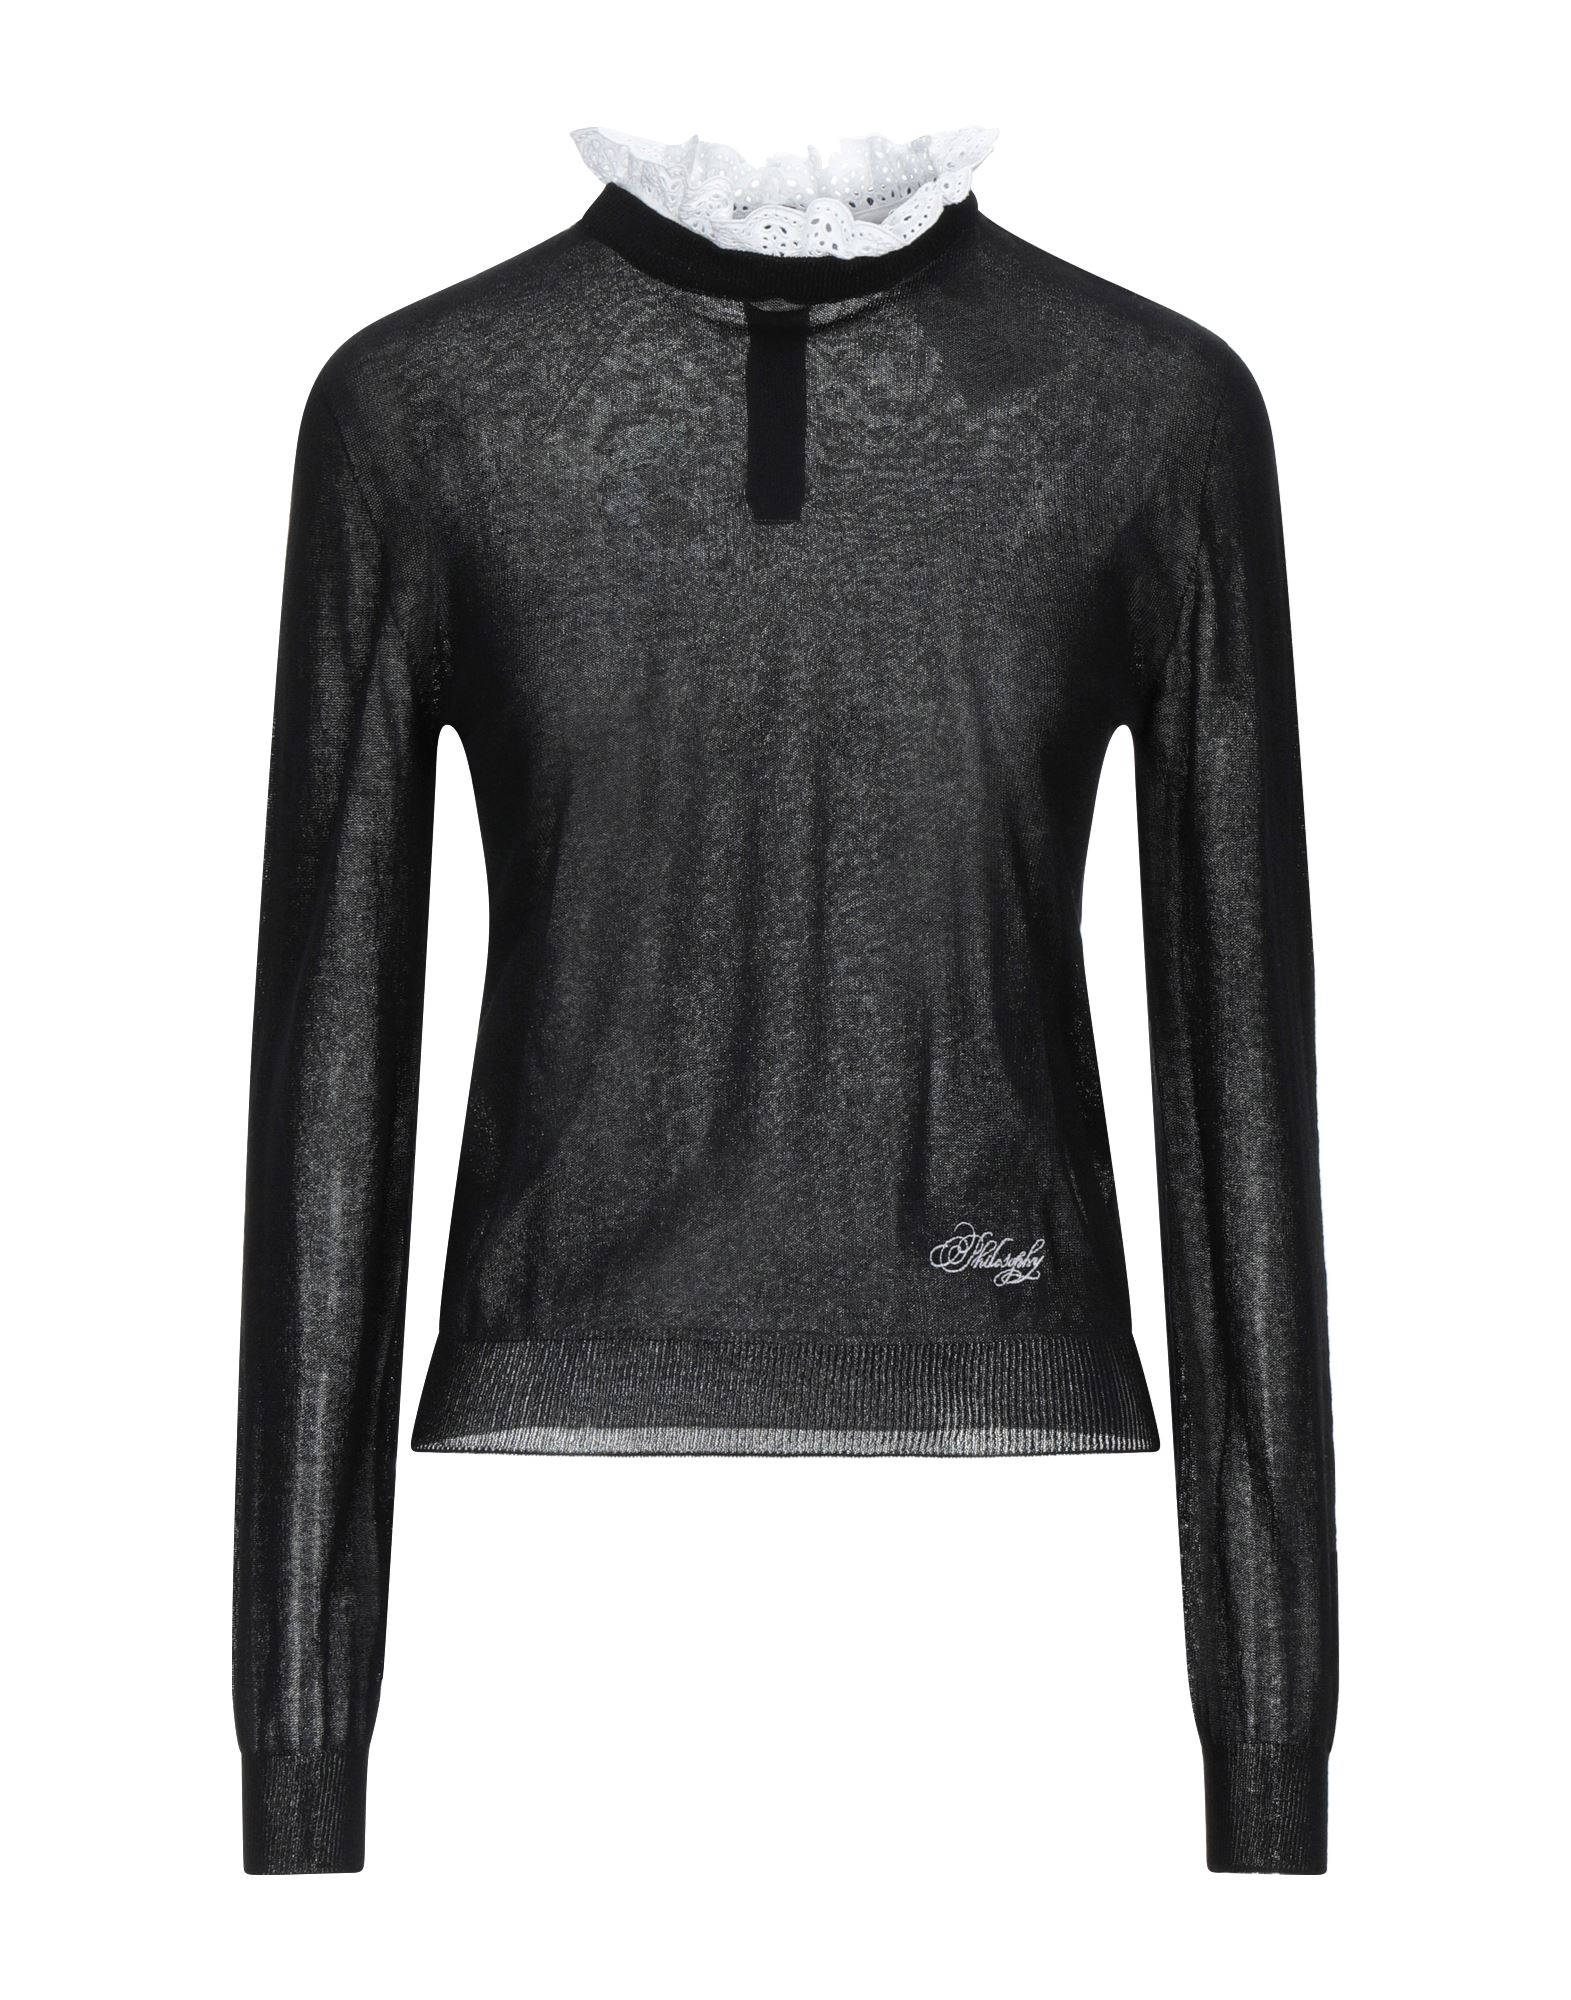 PHILOSOPHY di LORENZO SERAFINI Sweaters. lace, knitted, logo, detachable application, lightweight knit, lapel collar, solid color, long sleeves, rear closure, button closing, no pockets. 100% Cotton, Viscose, Polyamide